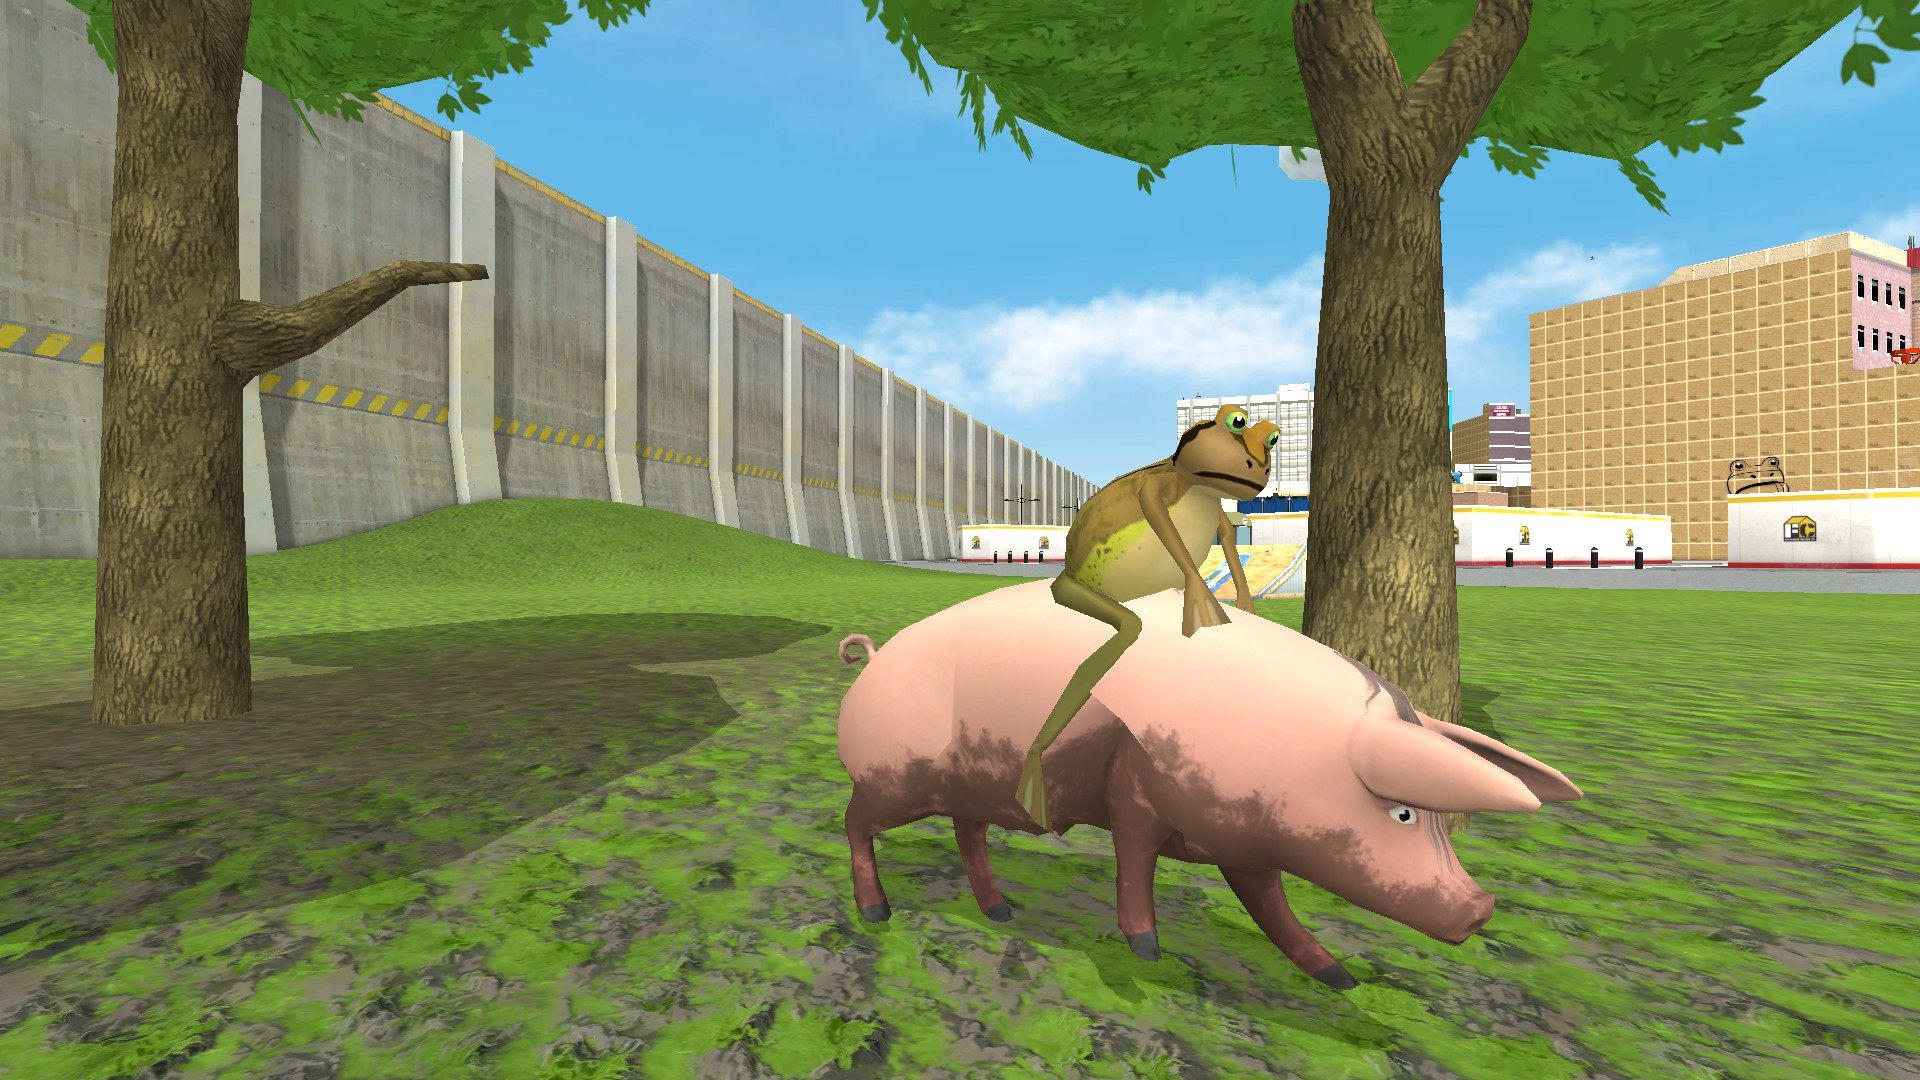 Just a frog riding a pig